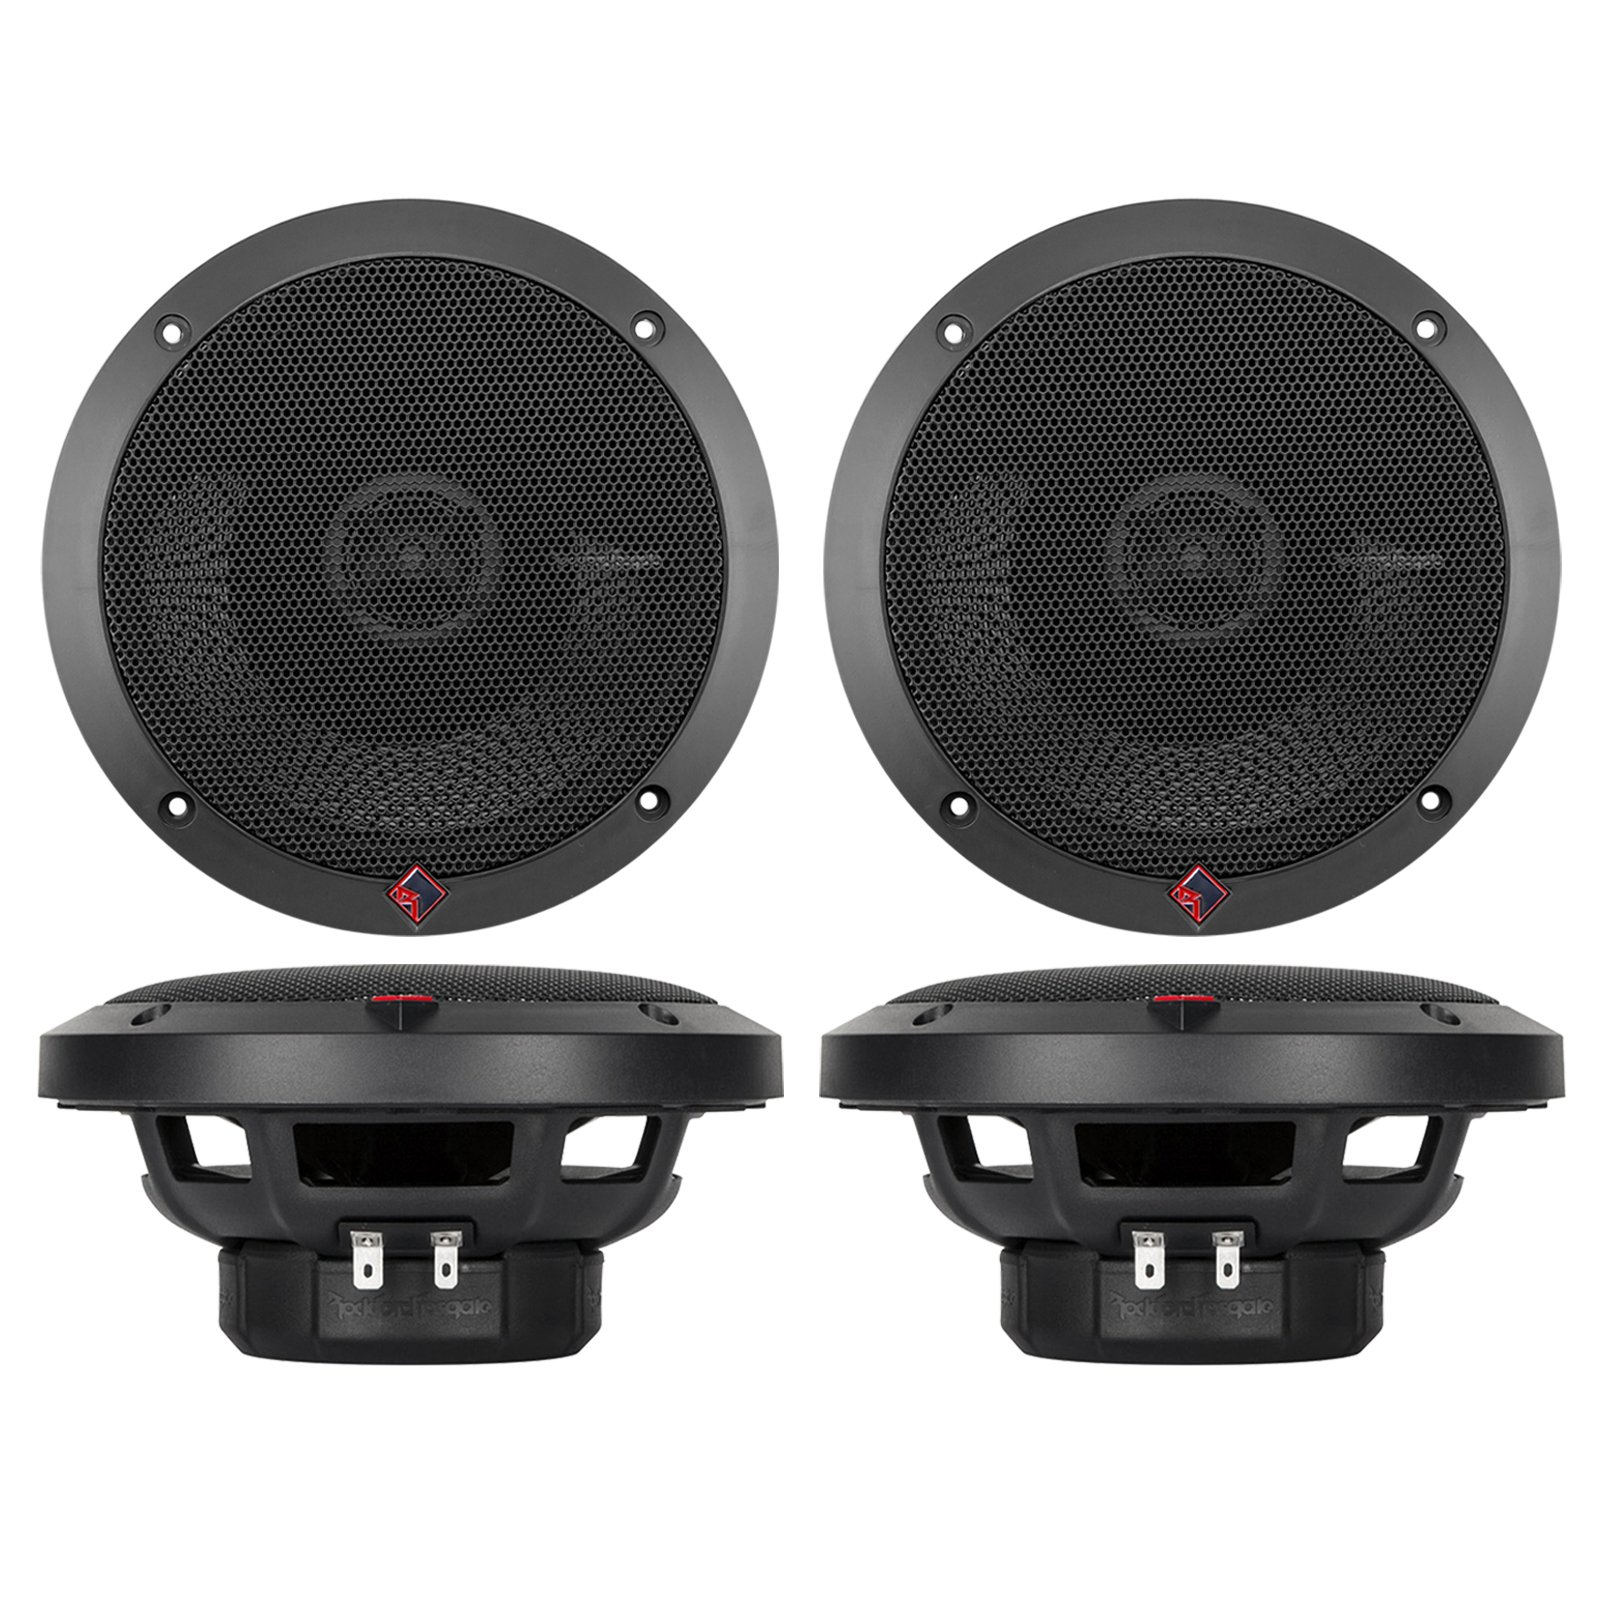 4) NEW Rockford Fosgate P1650 6.5'' 2-Way Full Range Car Audio Coaxial Speakers